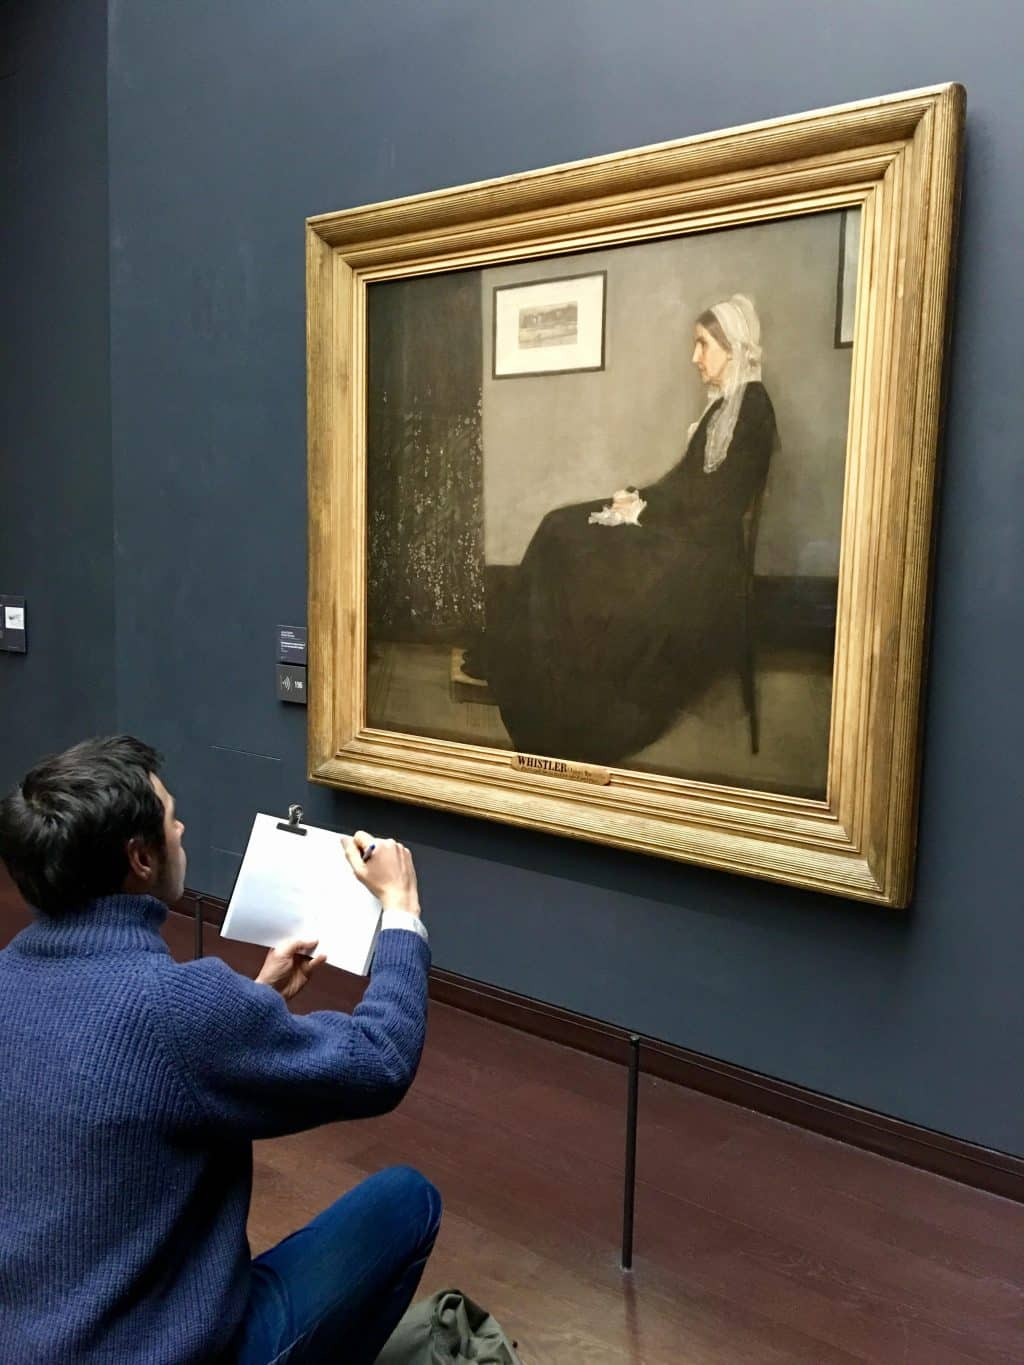 Whistler's Mother with artist on floor sketching